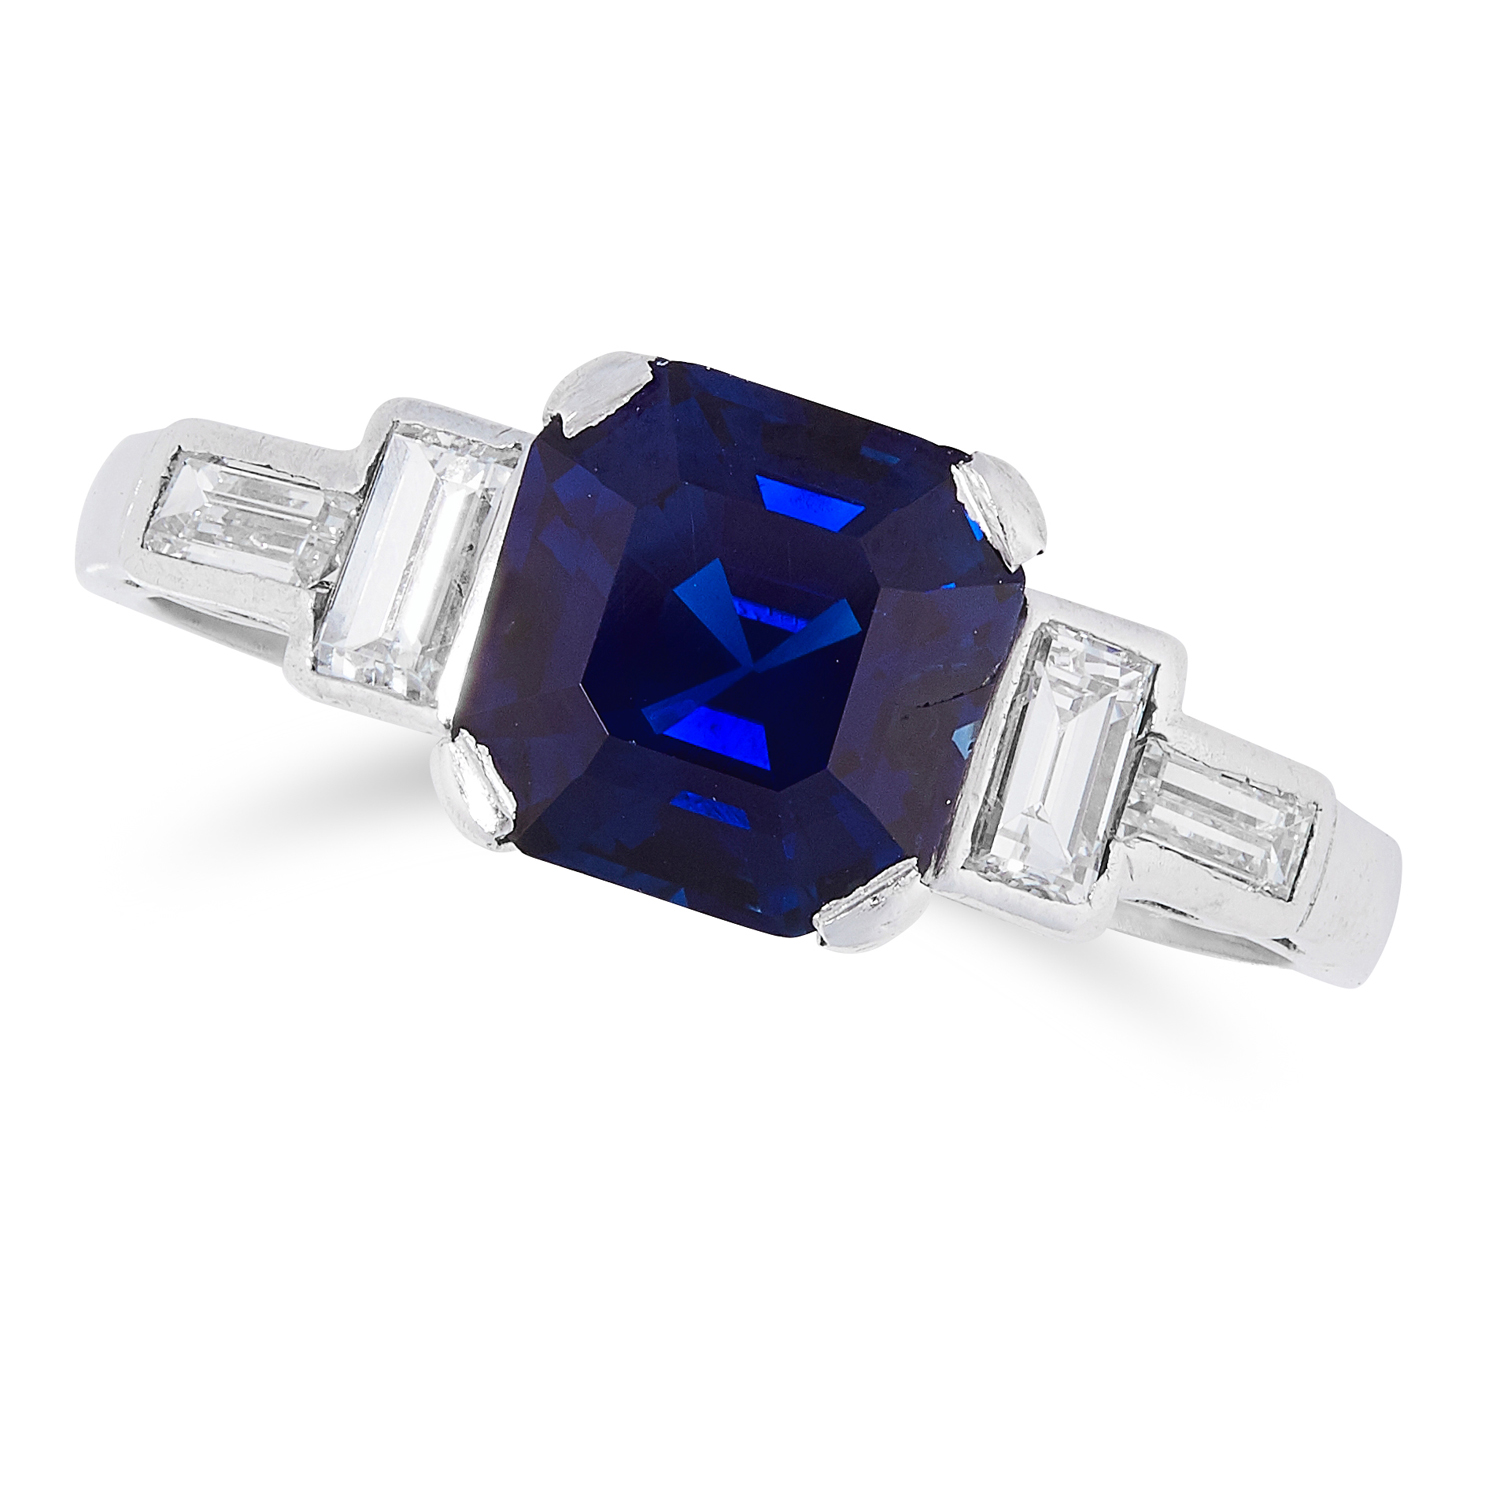 A SAPPHIRE AND DIAMOND RING set with an emerald cut sapphire of approximately 1.80 carats and